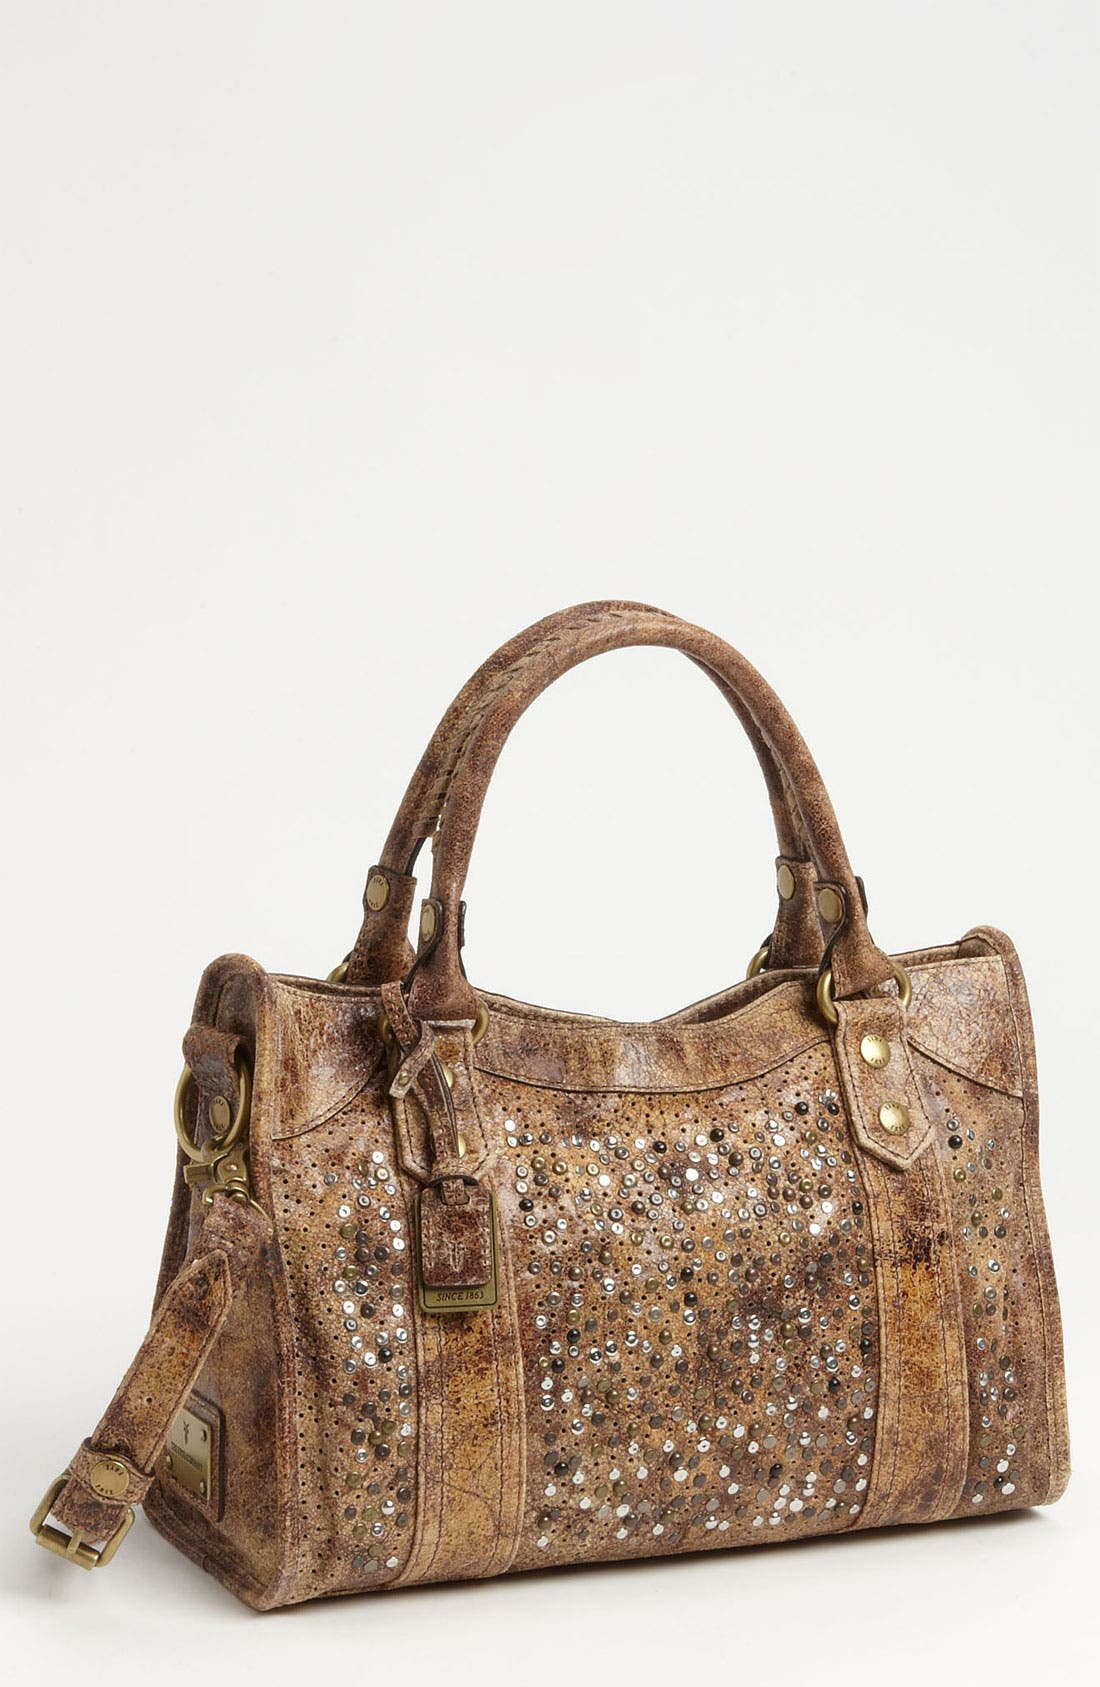 Alternate Image 1 Selected - Frye 'Deborah' Studded Satchel